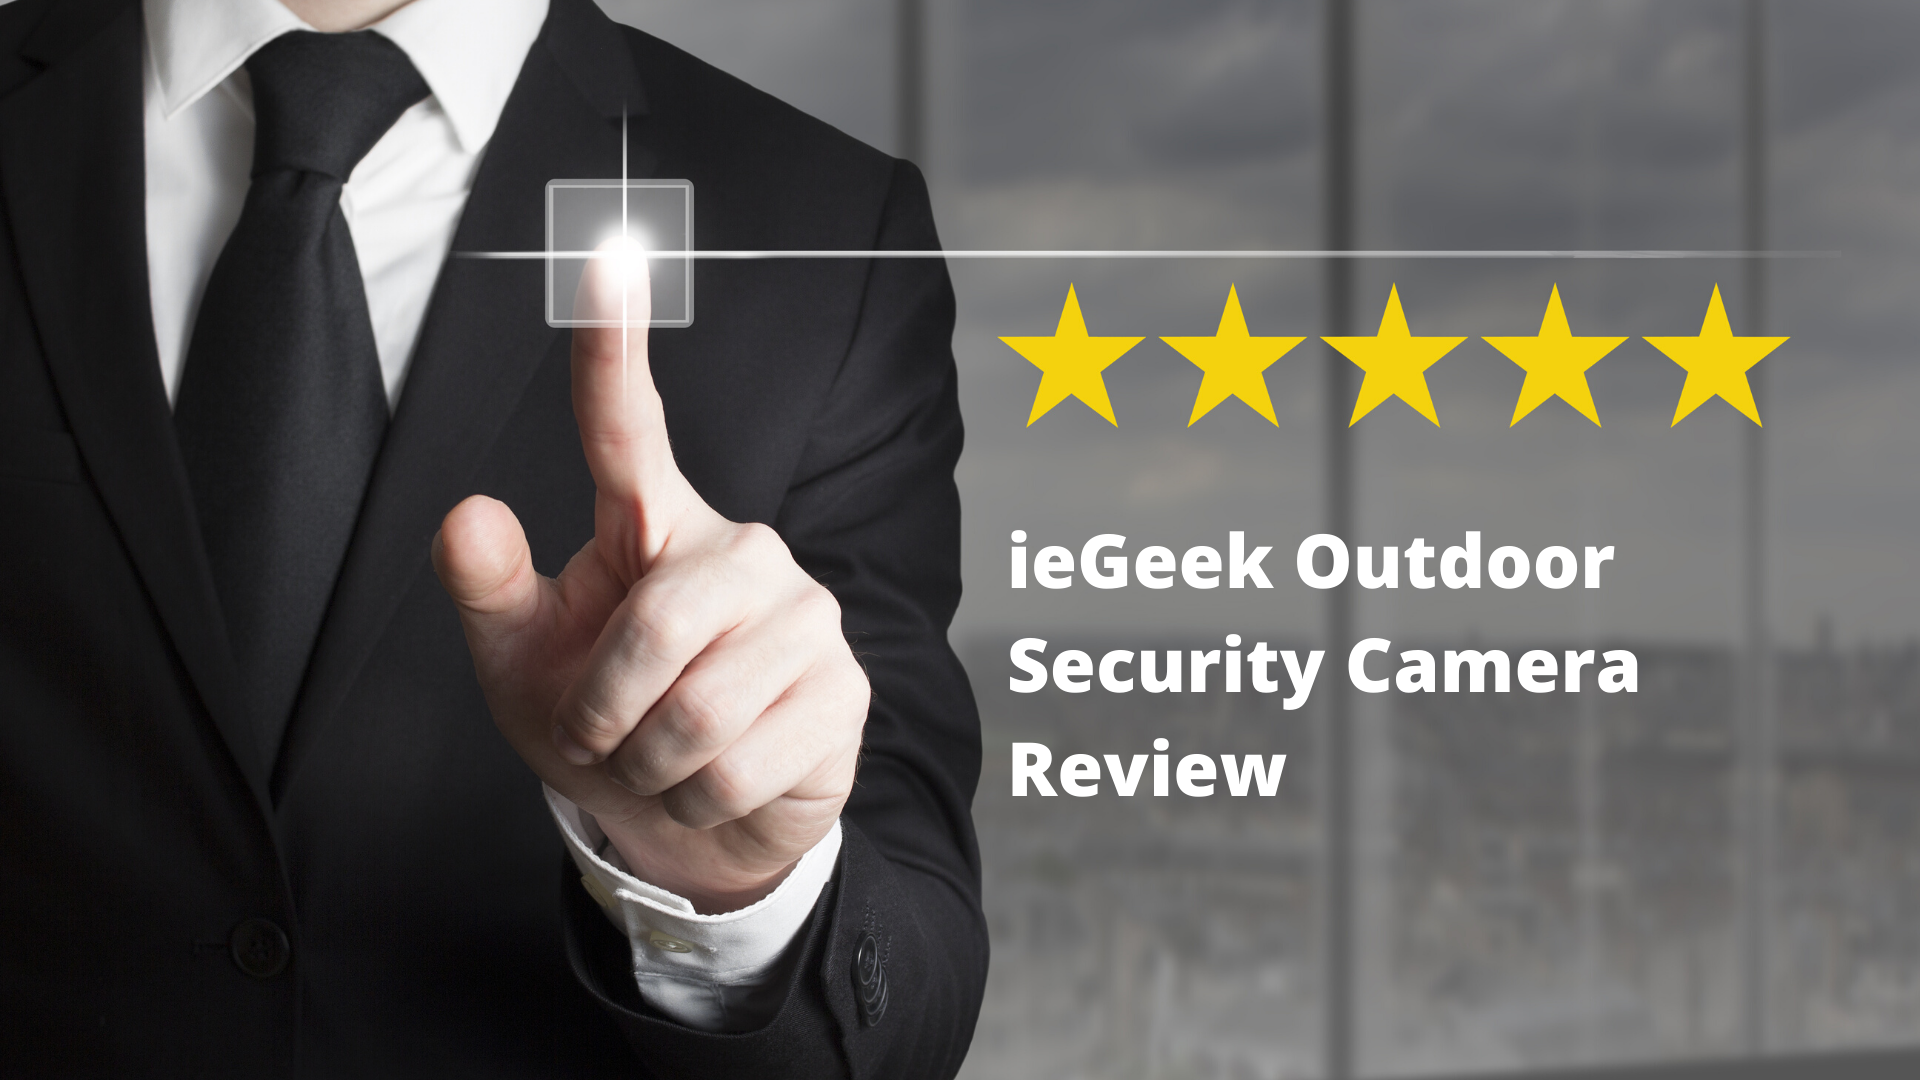 ieGeek Outdoor Security Camera Review